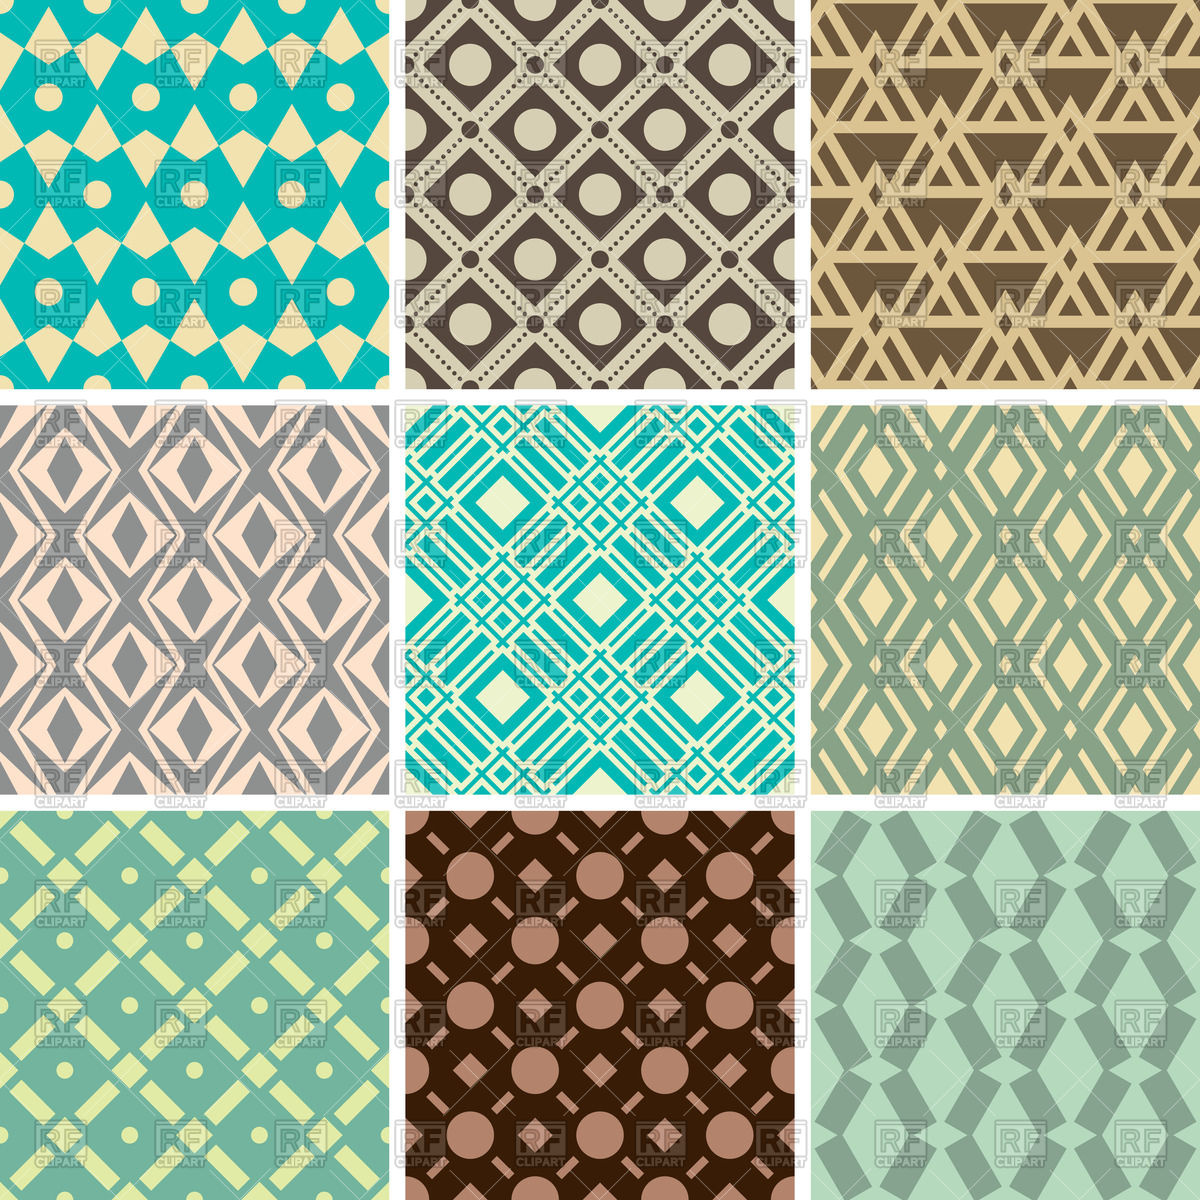 Abstract seamless geometric patterns for wallpaper 47988 Backgrounds 1200x1200